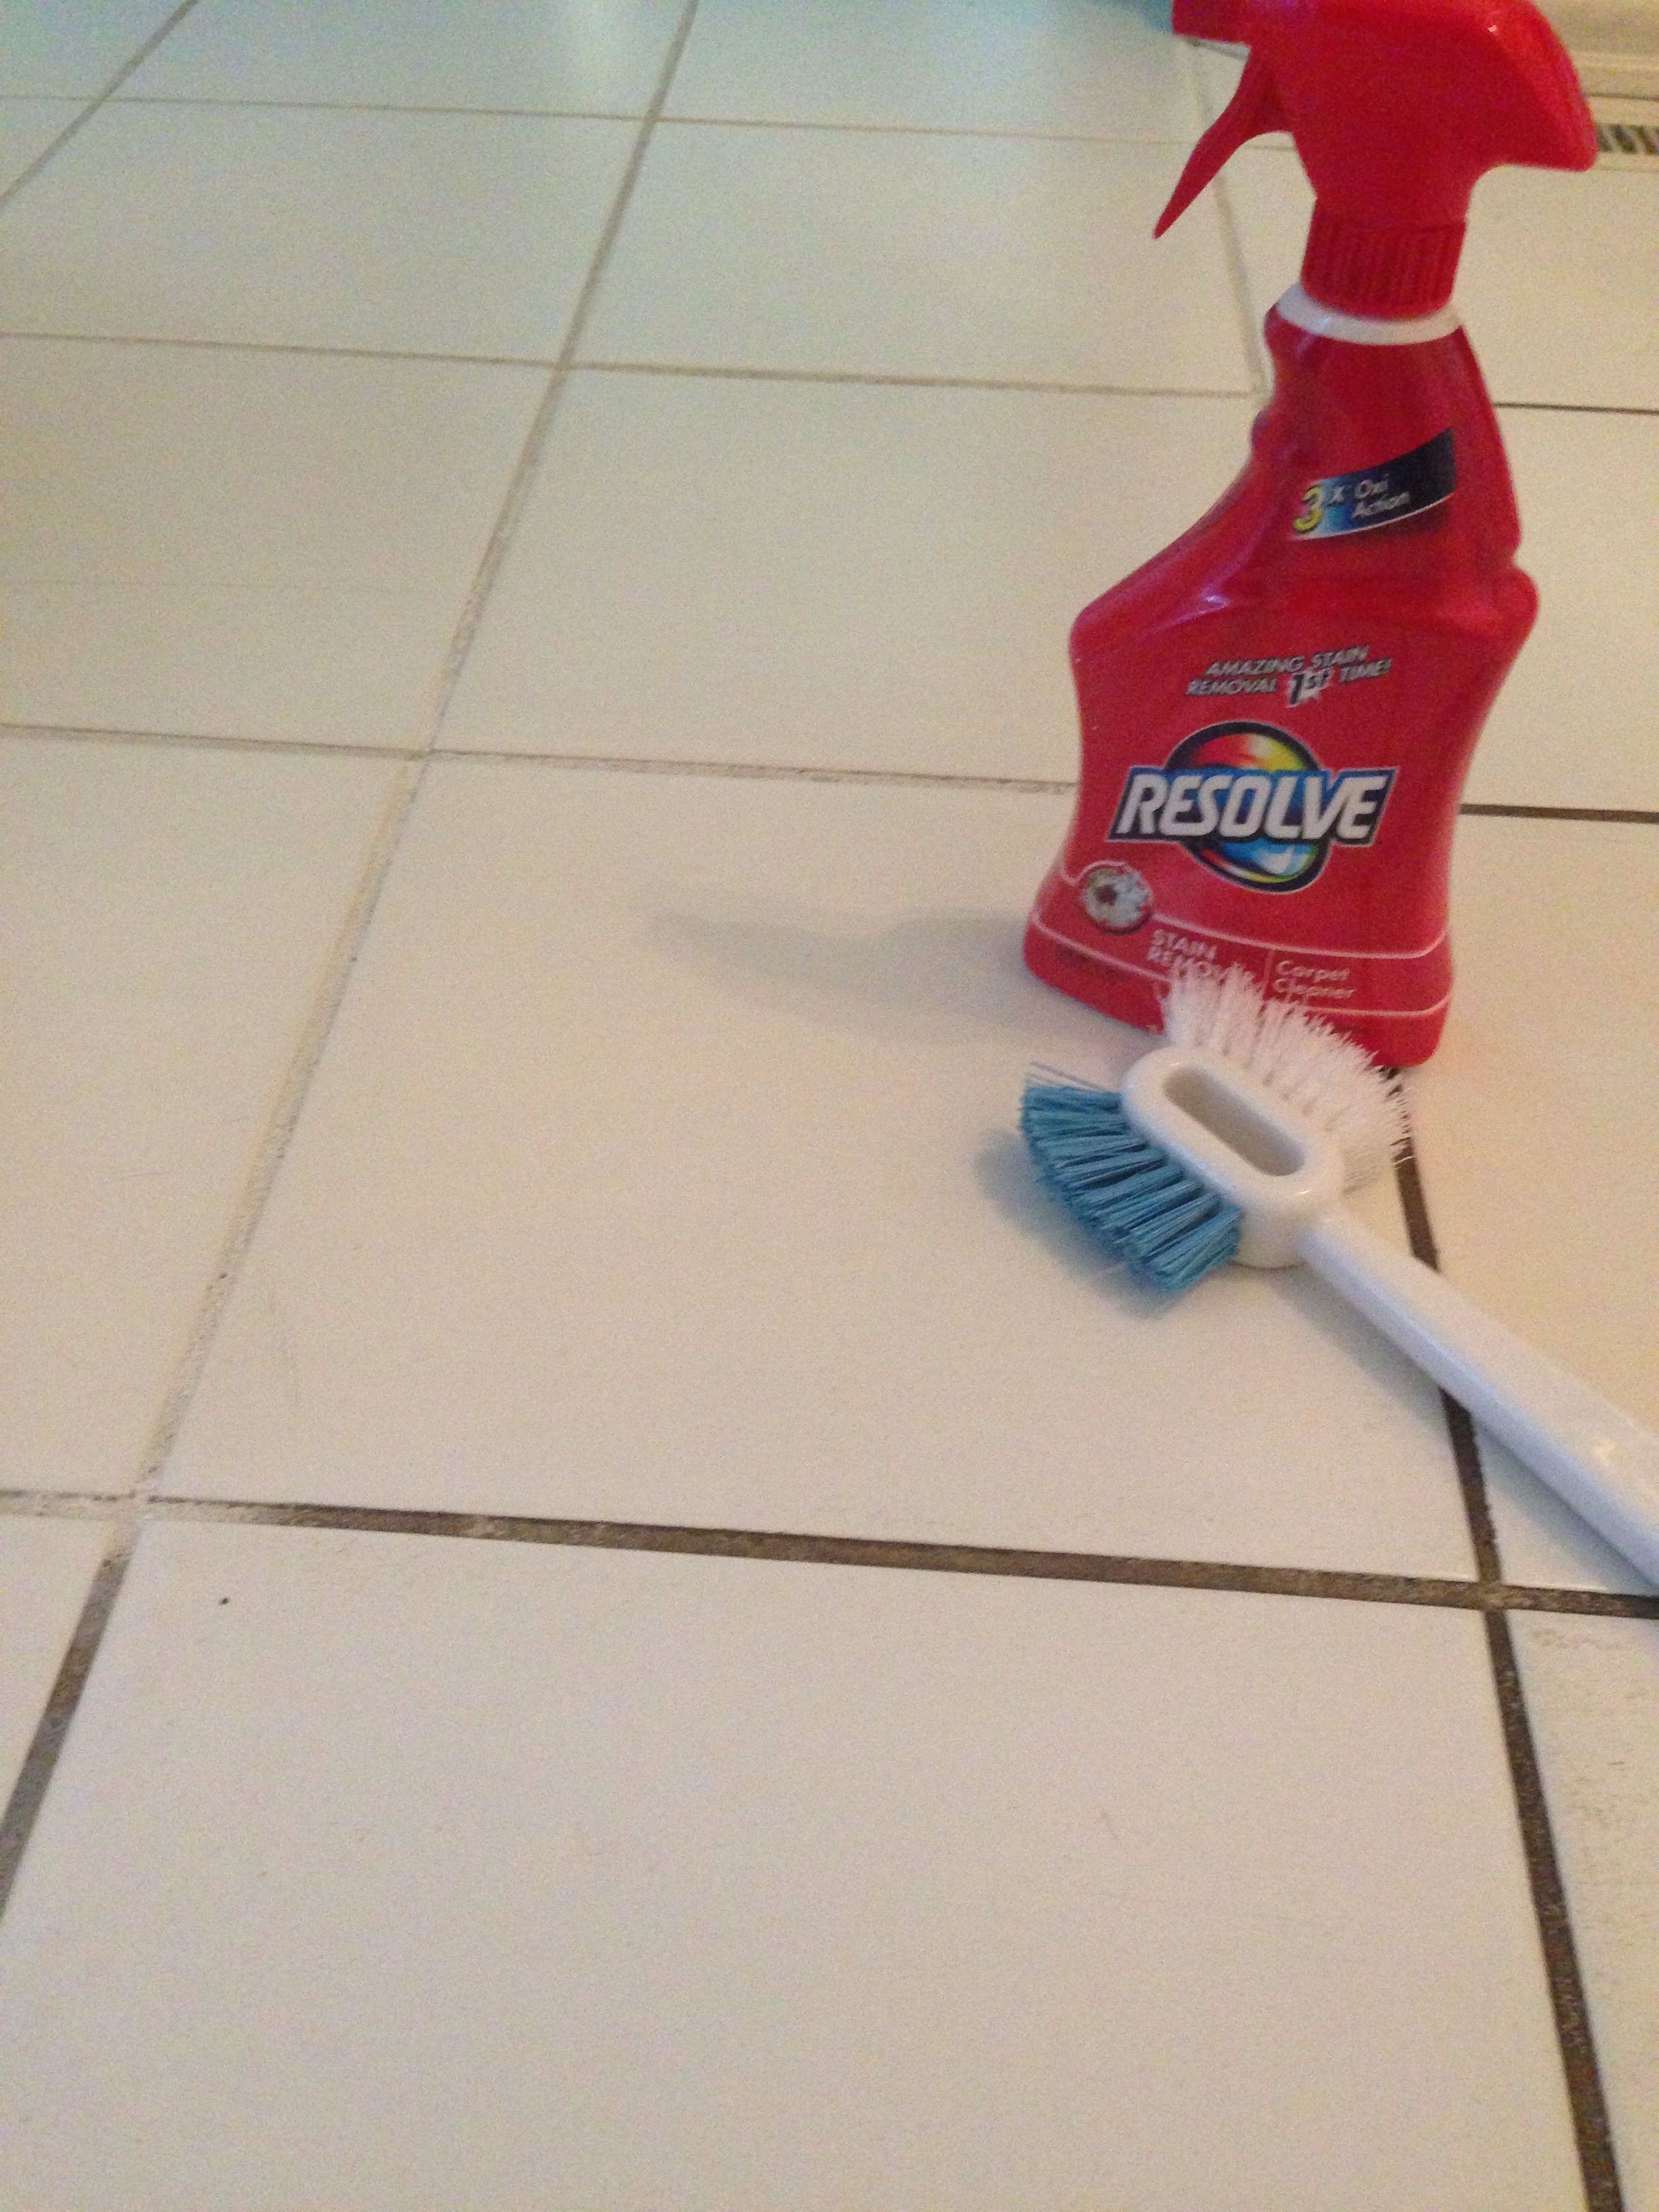 Resolve carpet cleaner to clean grout hydrogen peroxide grout and resolve carpet cleaner to clean grout dailygadgetfo Gallery